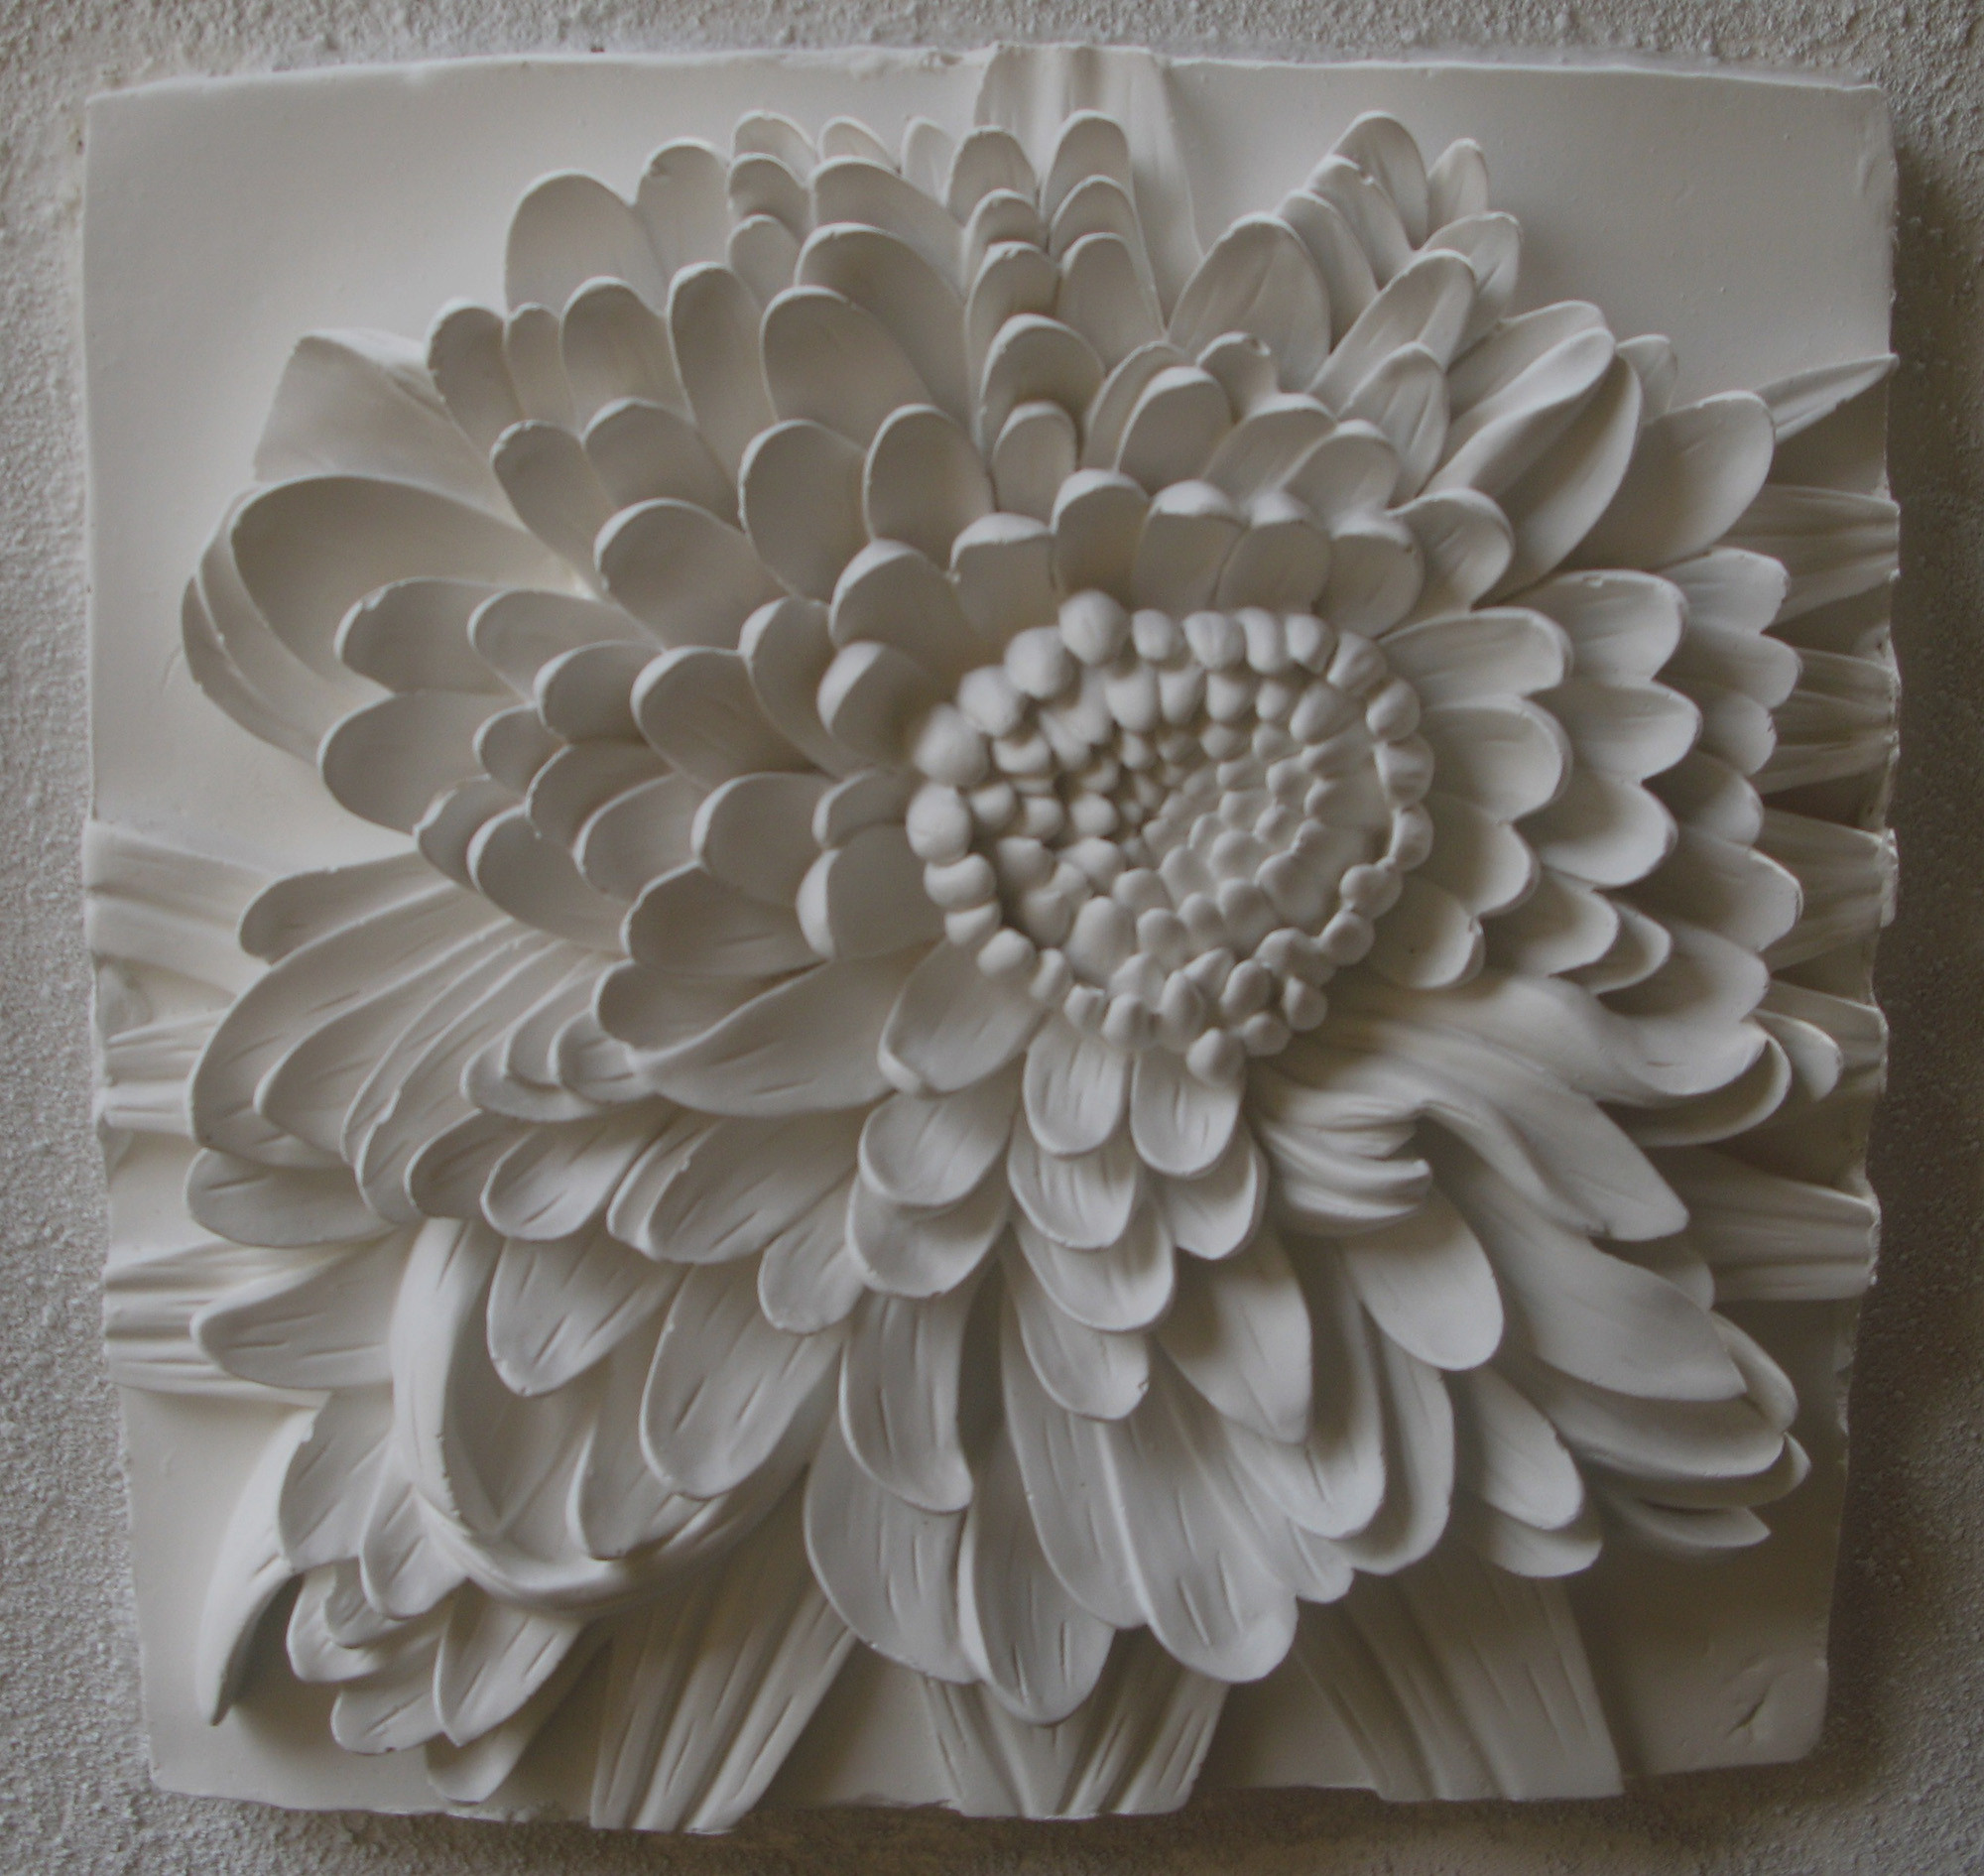 Best ideas about 3D Wall Art . Save or Pin 3d flower wall art Now.